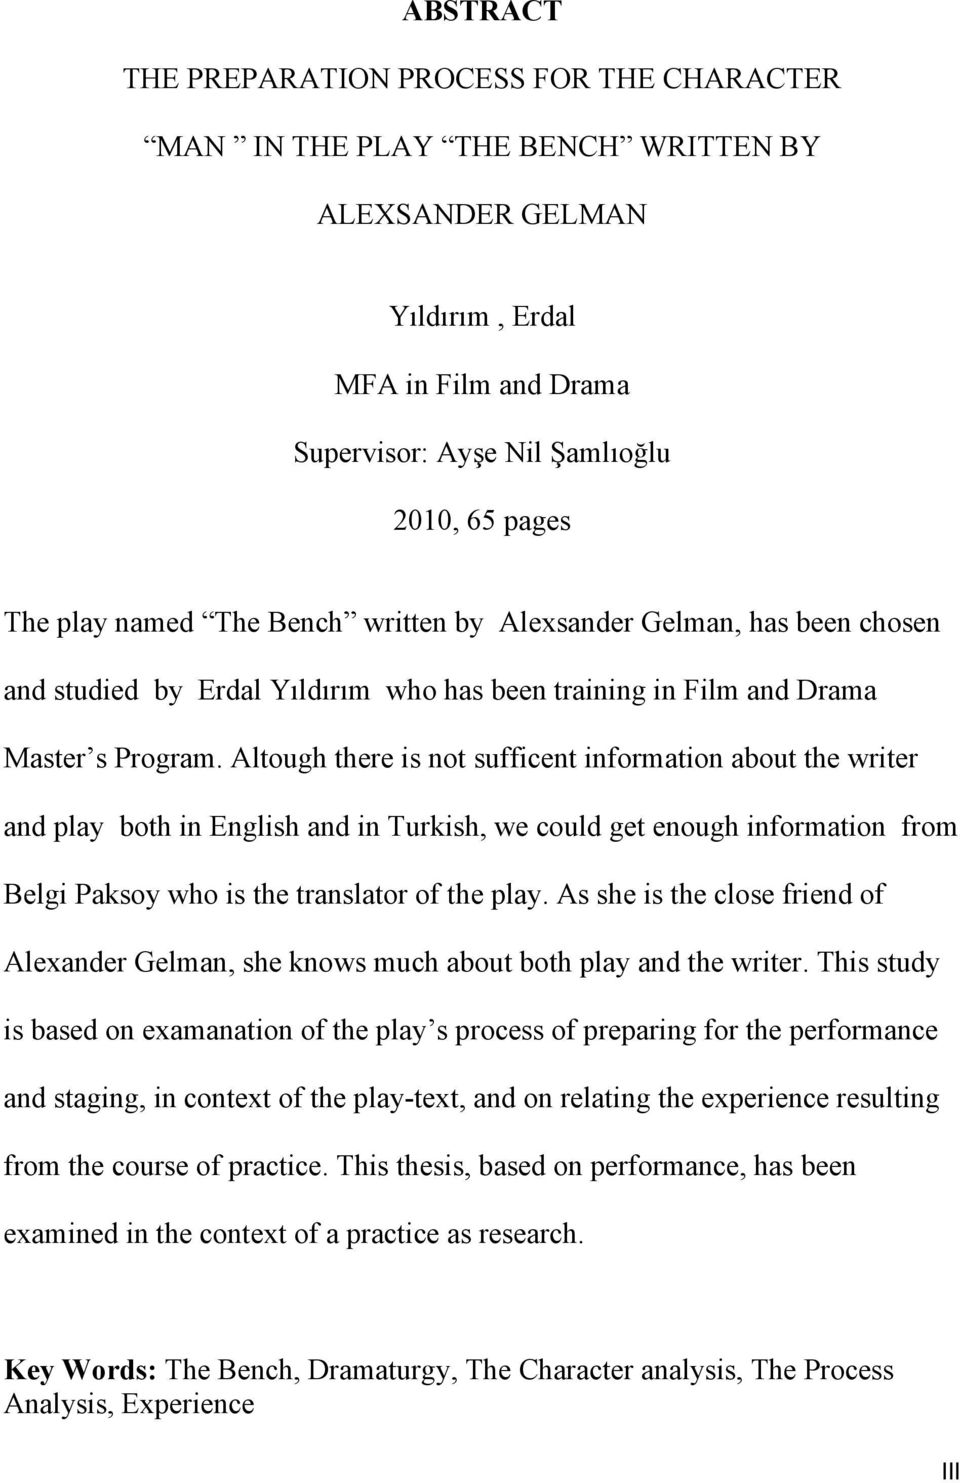 Altough there is not sufficent information about the writer and play both in English and in Turkish, we could get enough information from Belgi Paksoy who is the translator of the play.